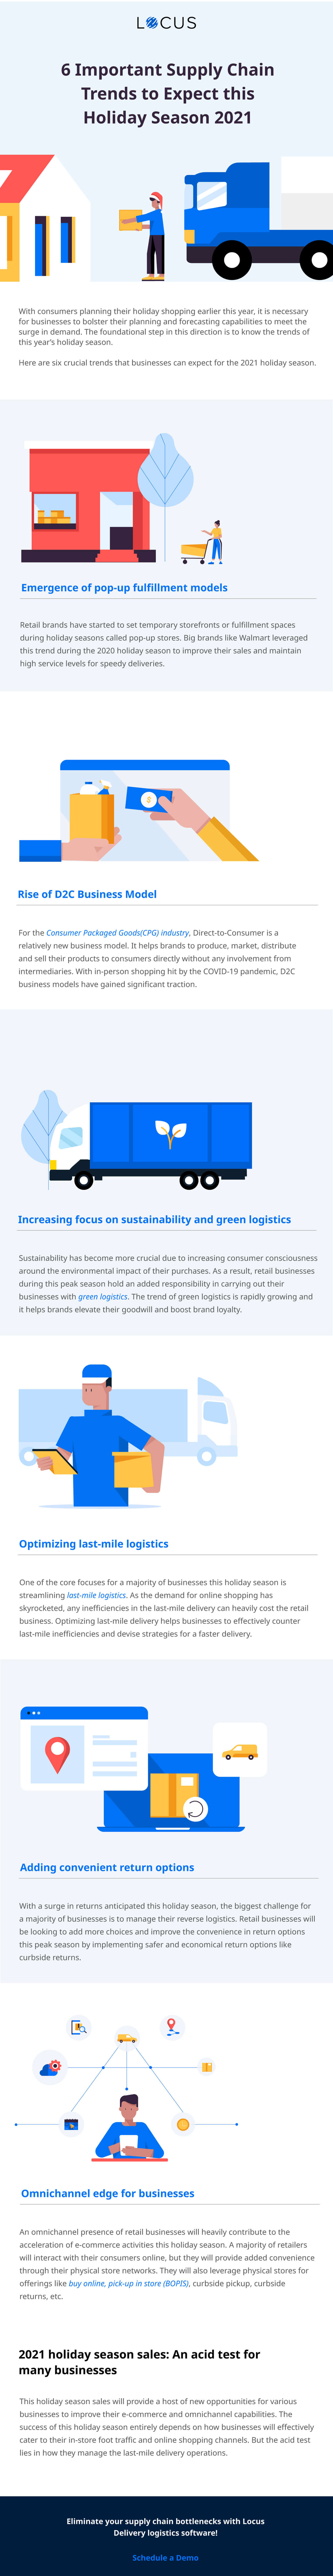 6 Major Supply Chain Trends to Expect in Holiday Season 2021